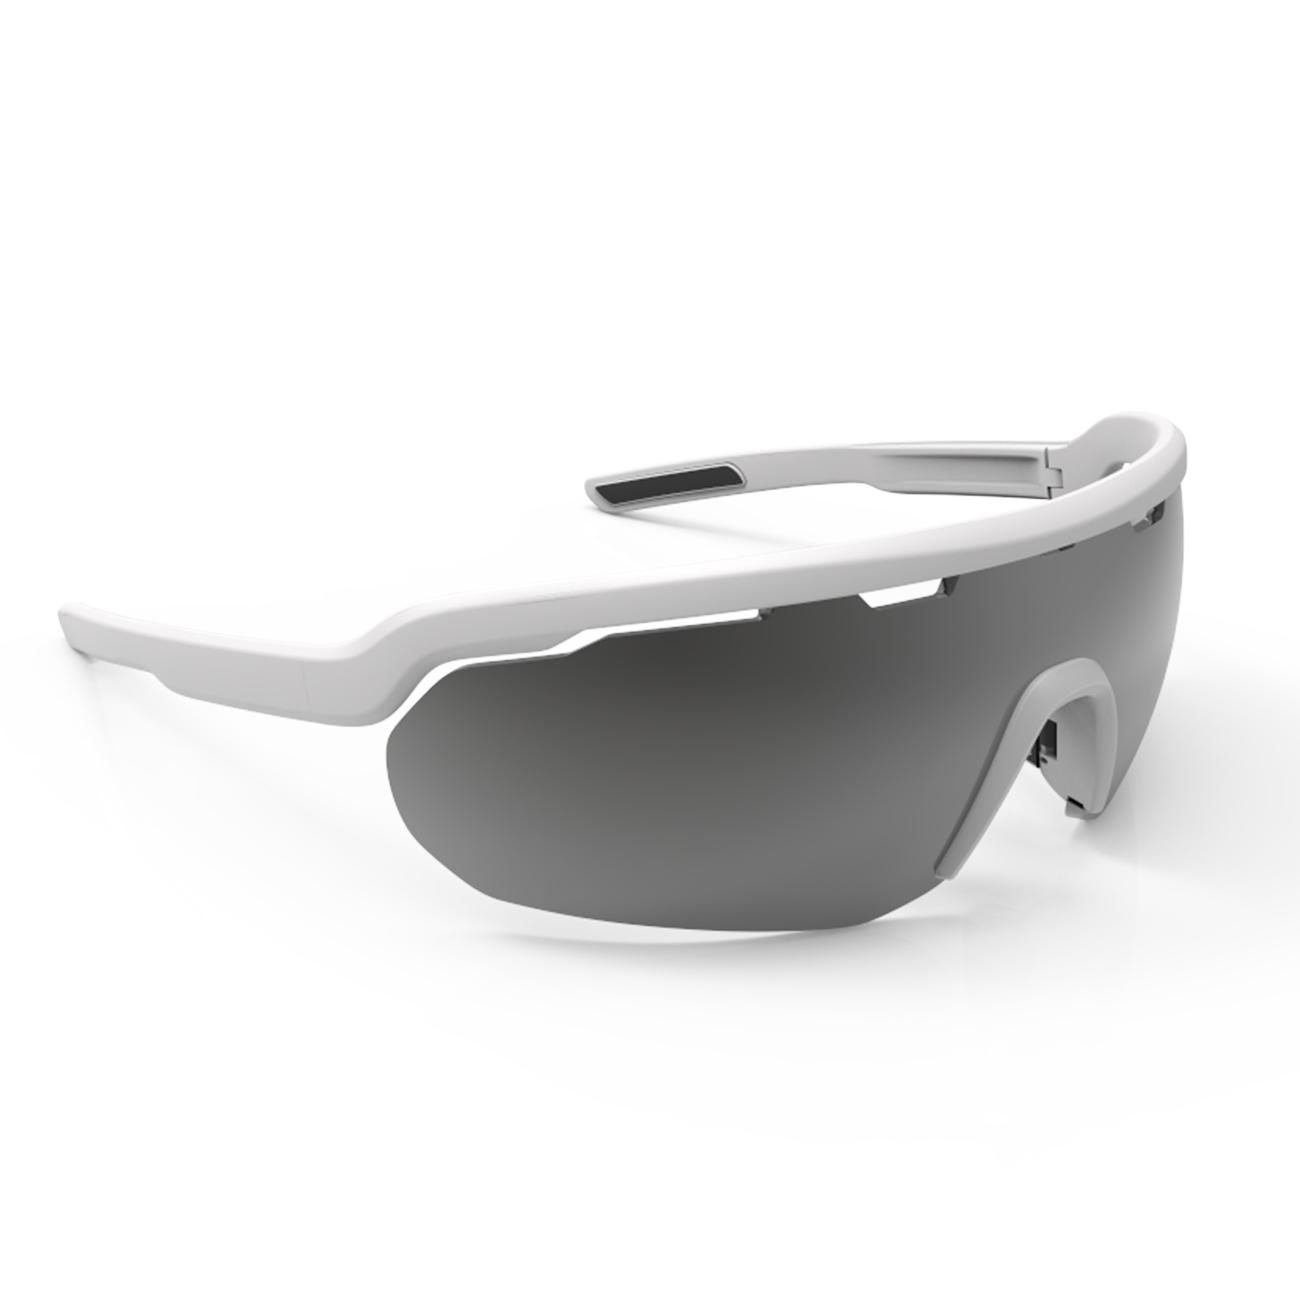 Afbeelding Briko Fiets zonnebril unisex Wit - Stardust 2 Lenses Off White-SM3Y1